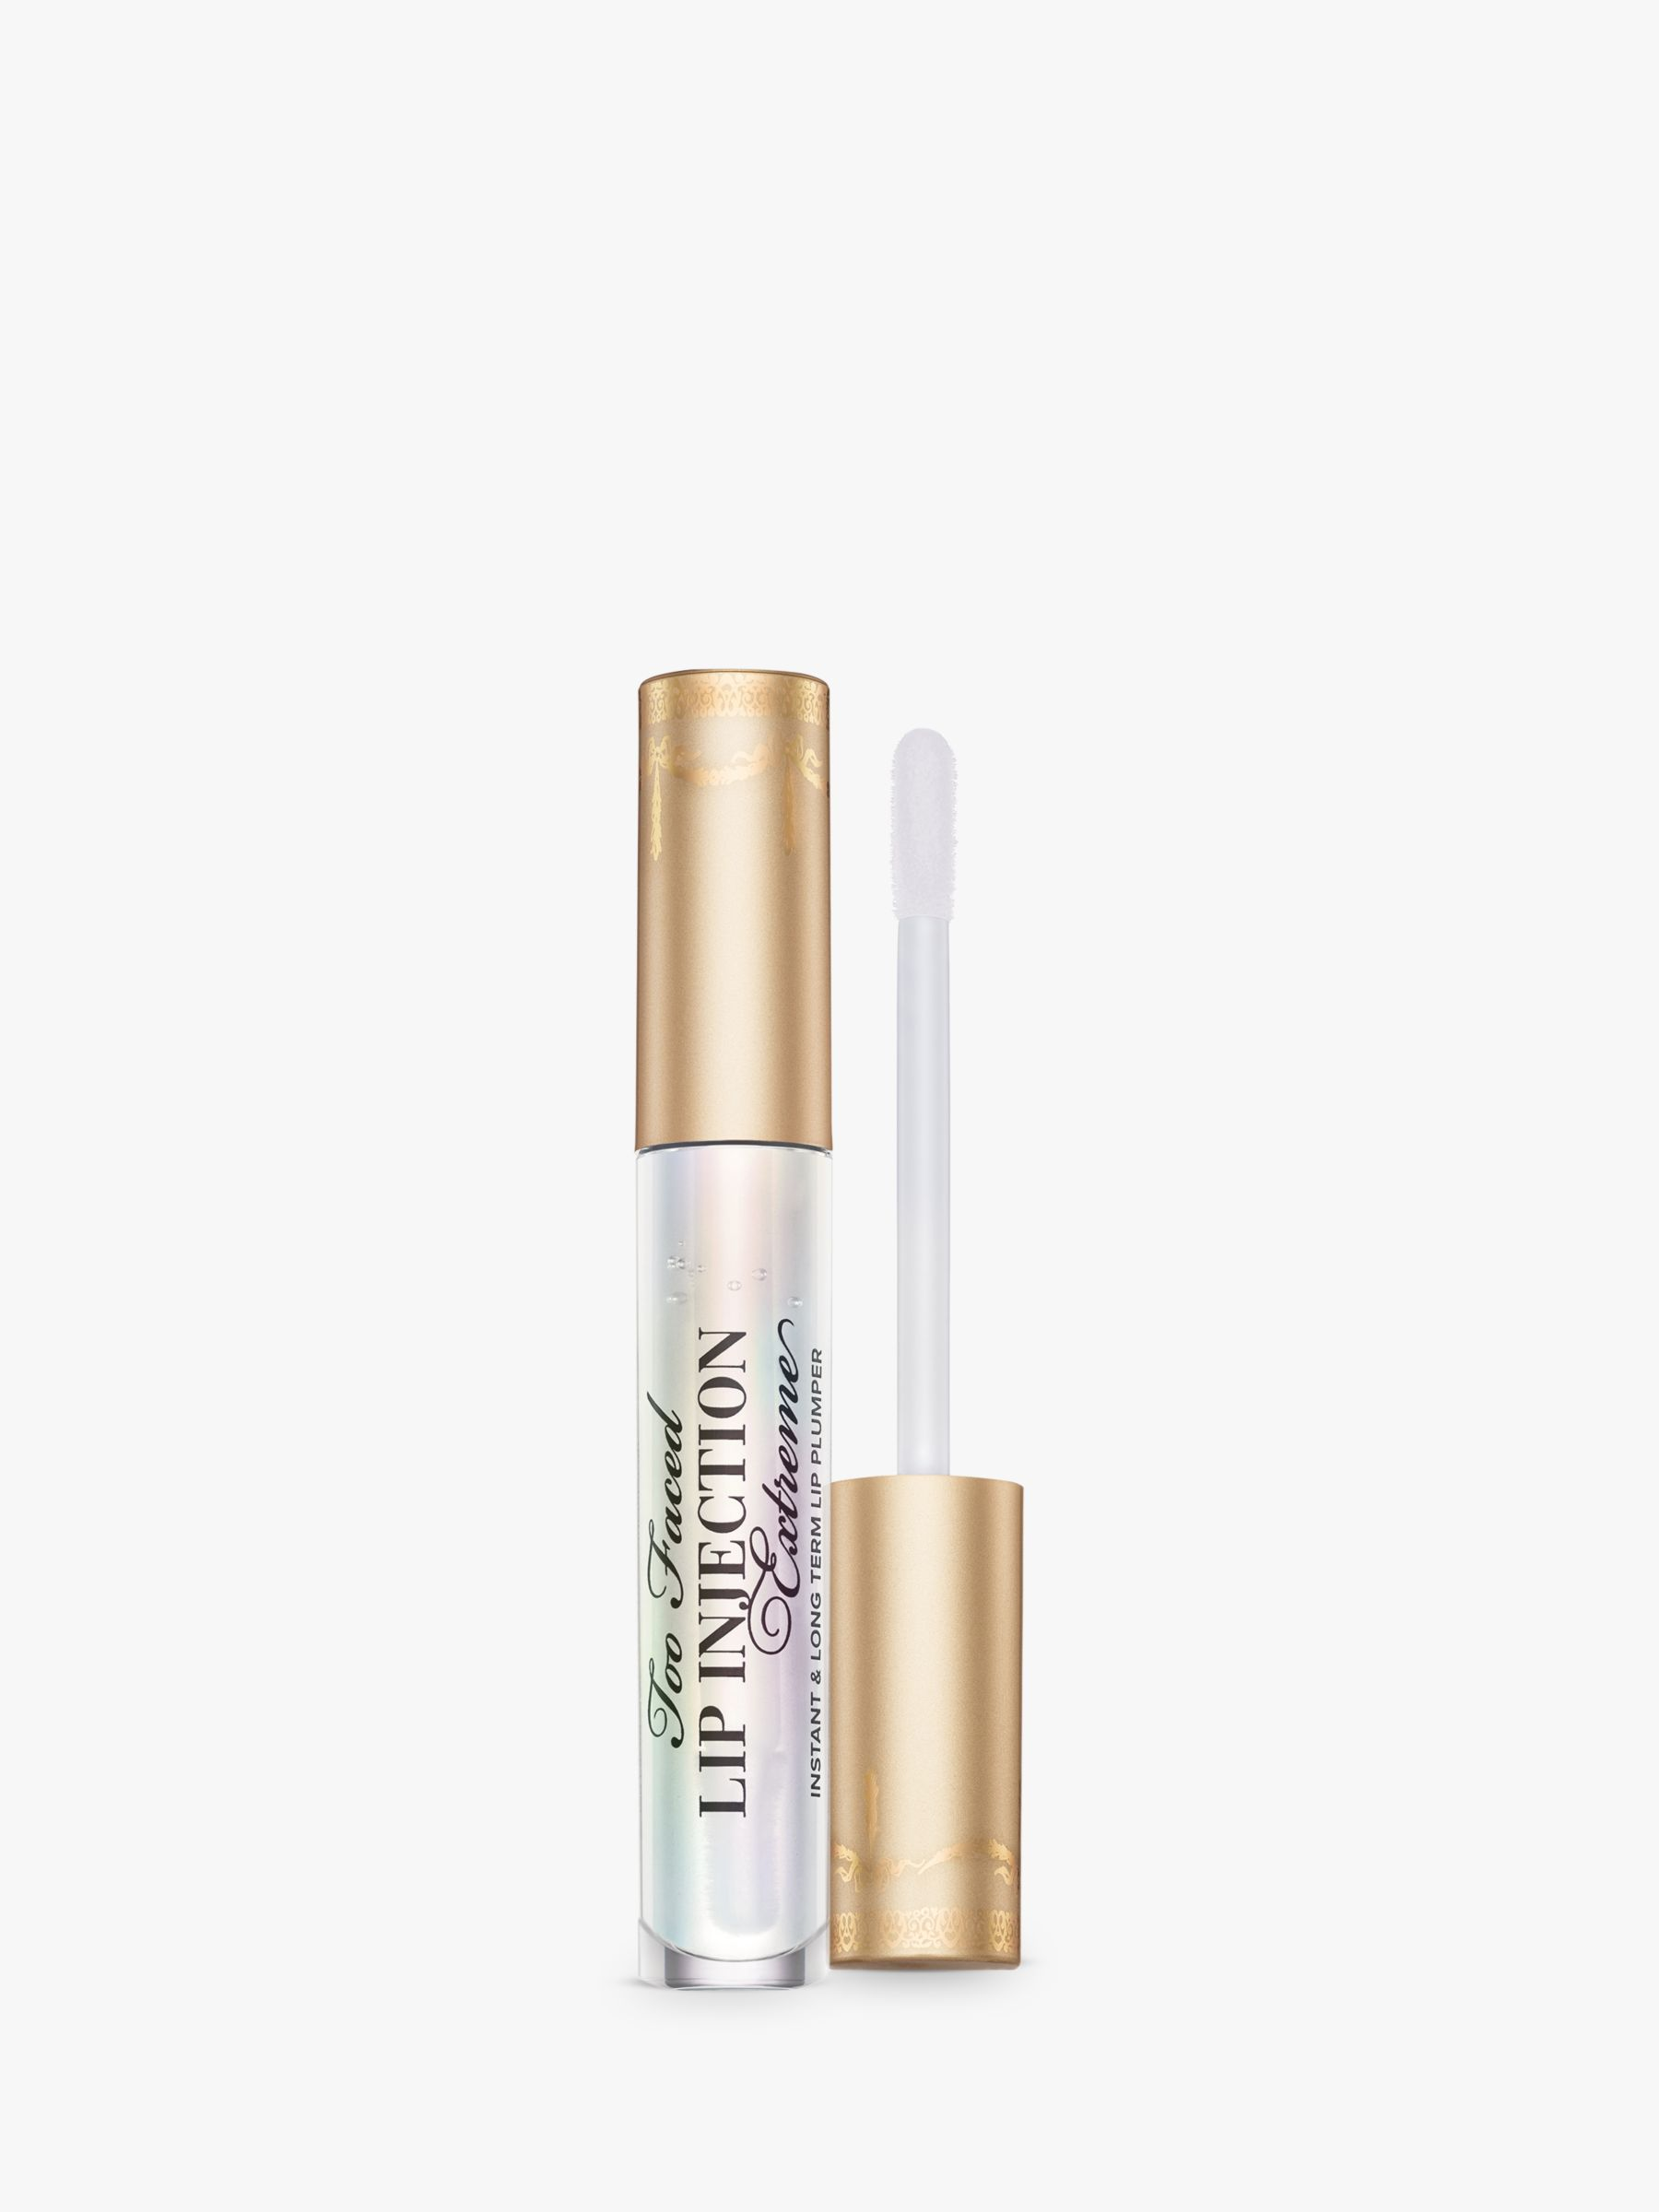 Too Faced Too Faced Lip Injection Extreme Plumping Lip Gloss, 4ml